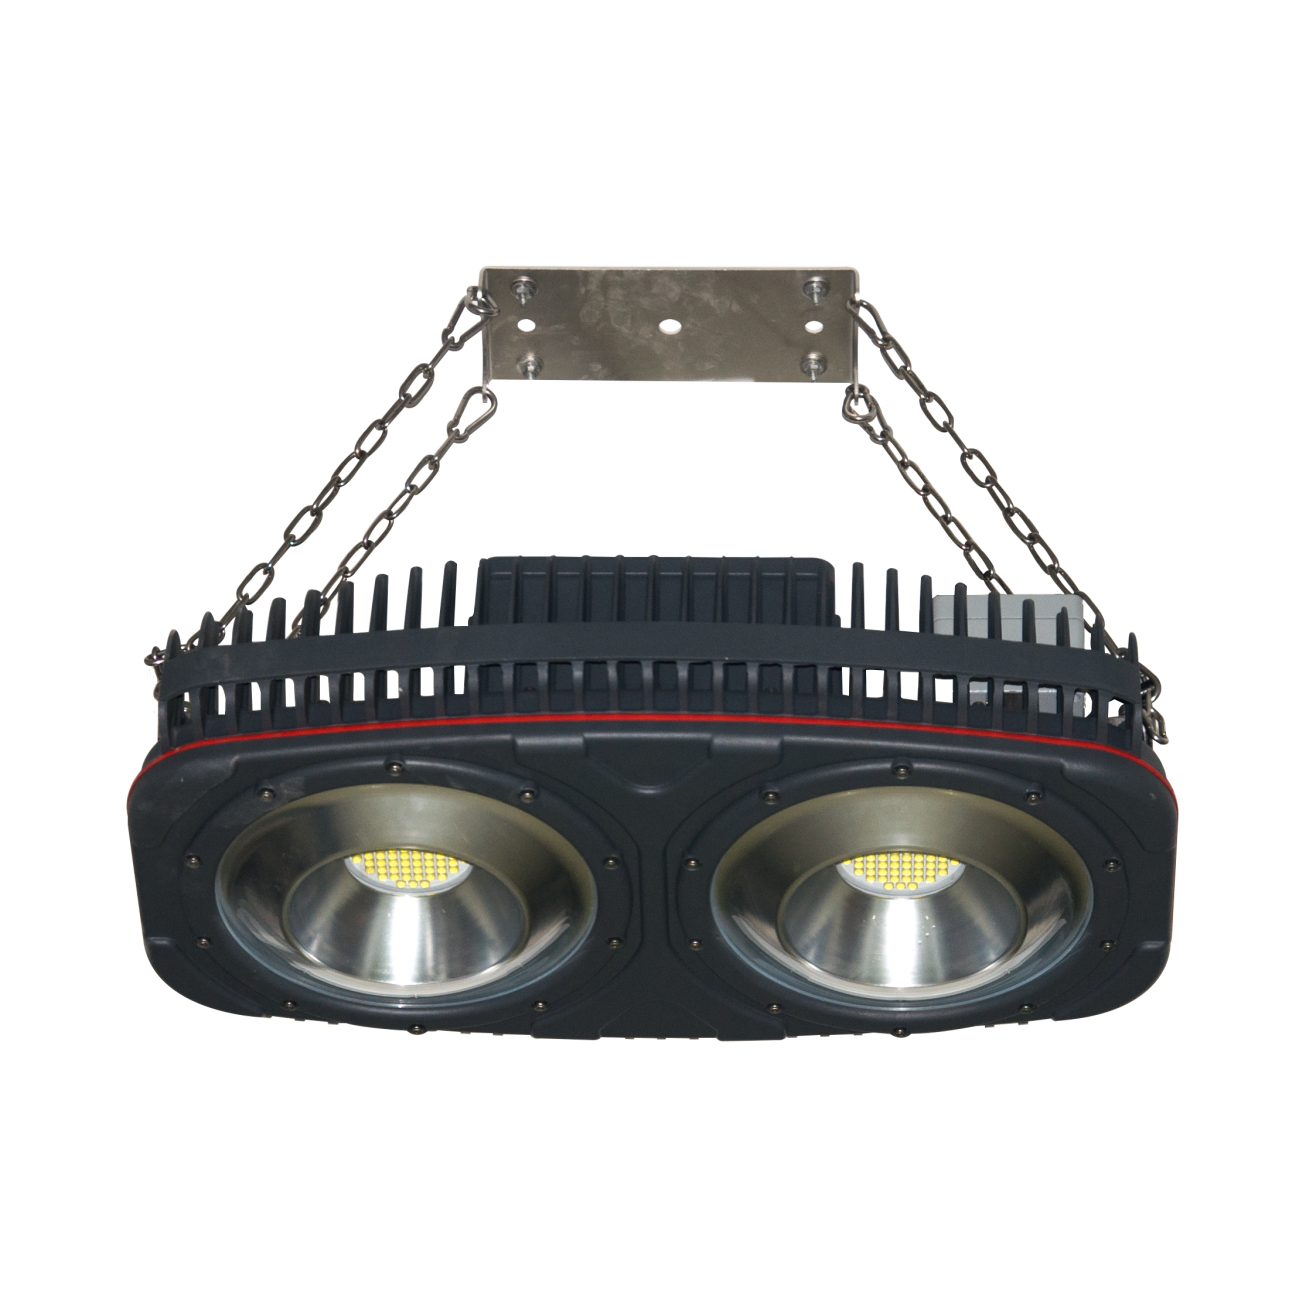 120W-1000W INDUSTRIAL LED FLOOD LIGHT - SUSPENDED